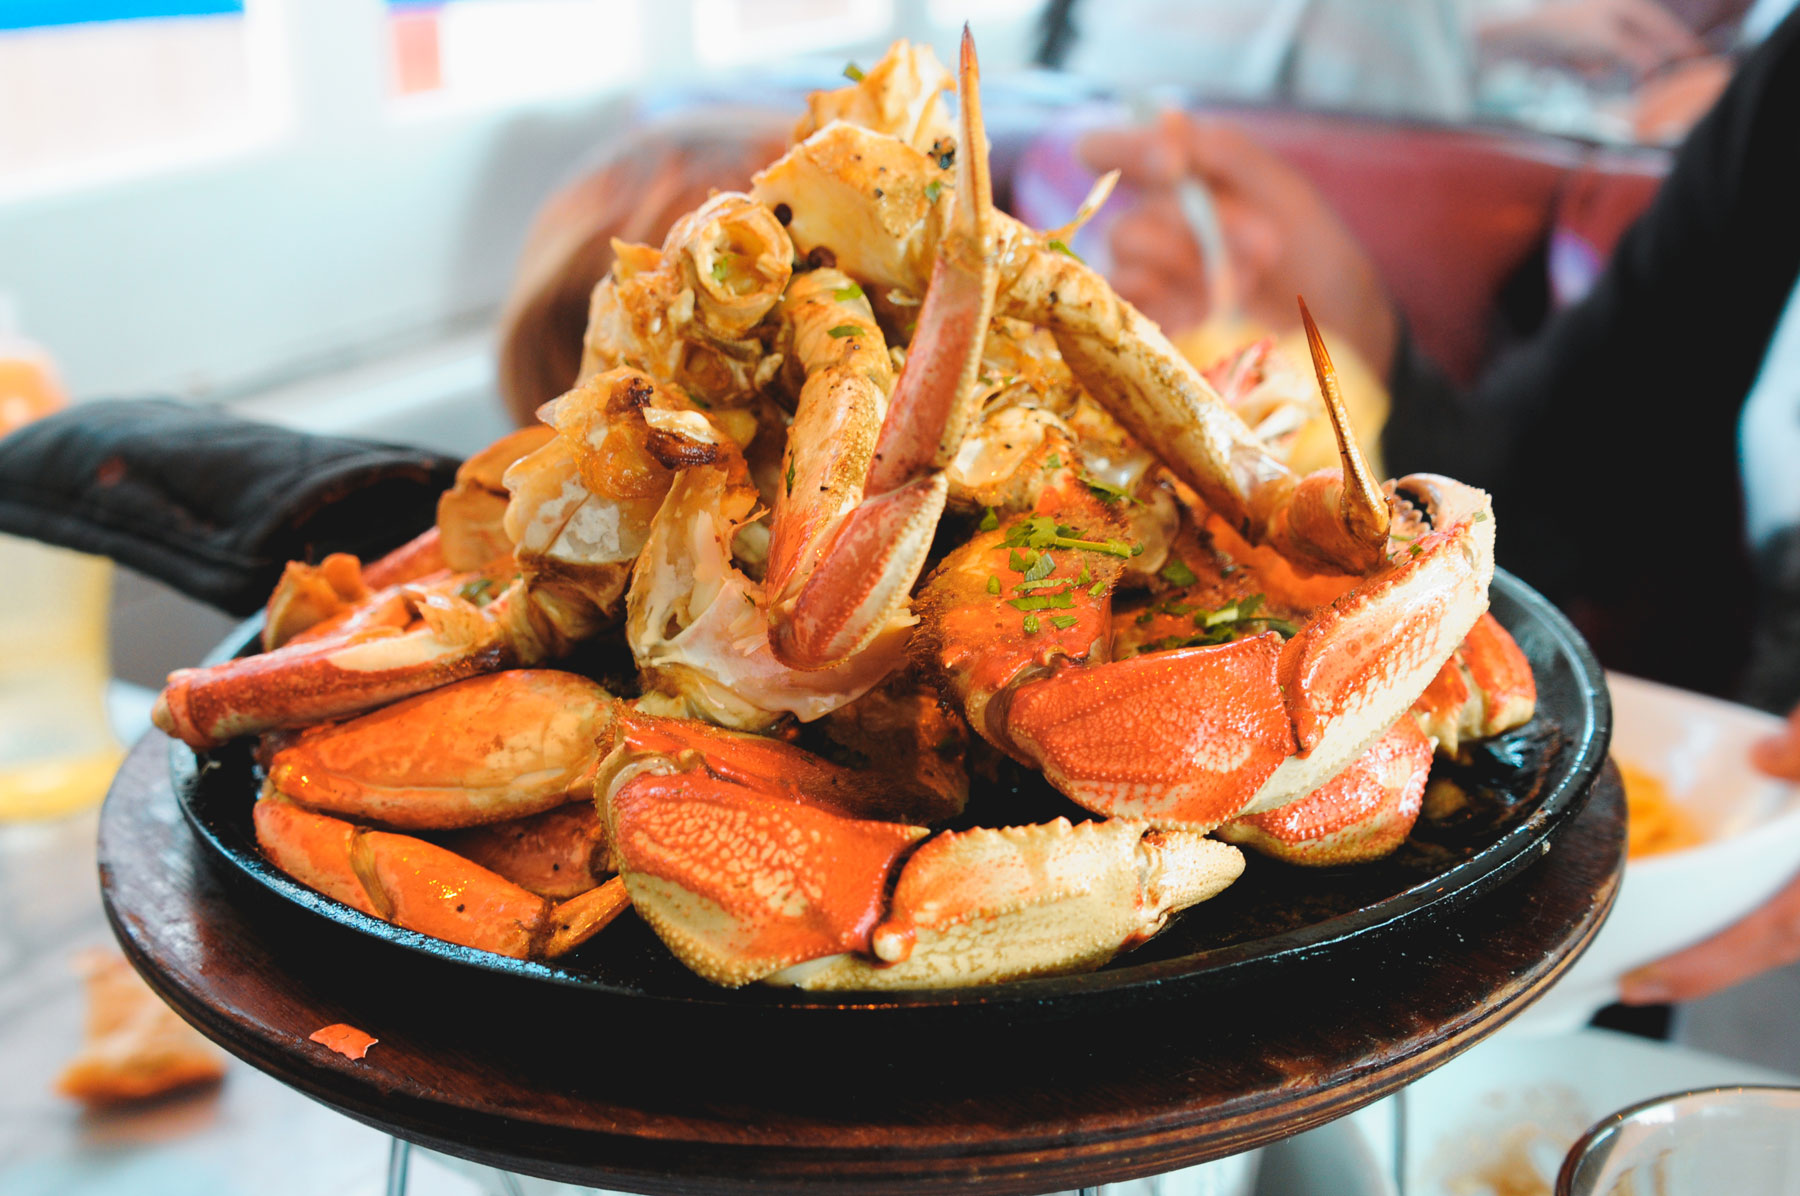 A cast iron skillet filled with steamed crab legs.